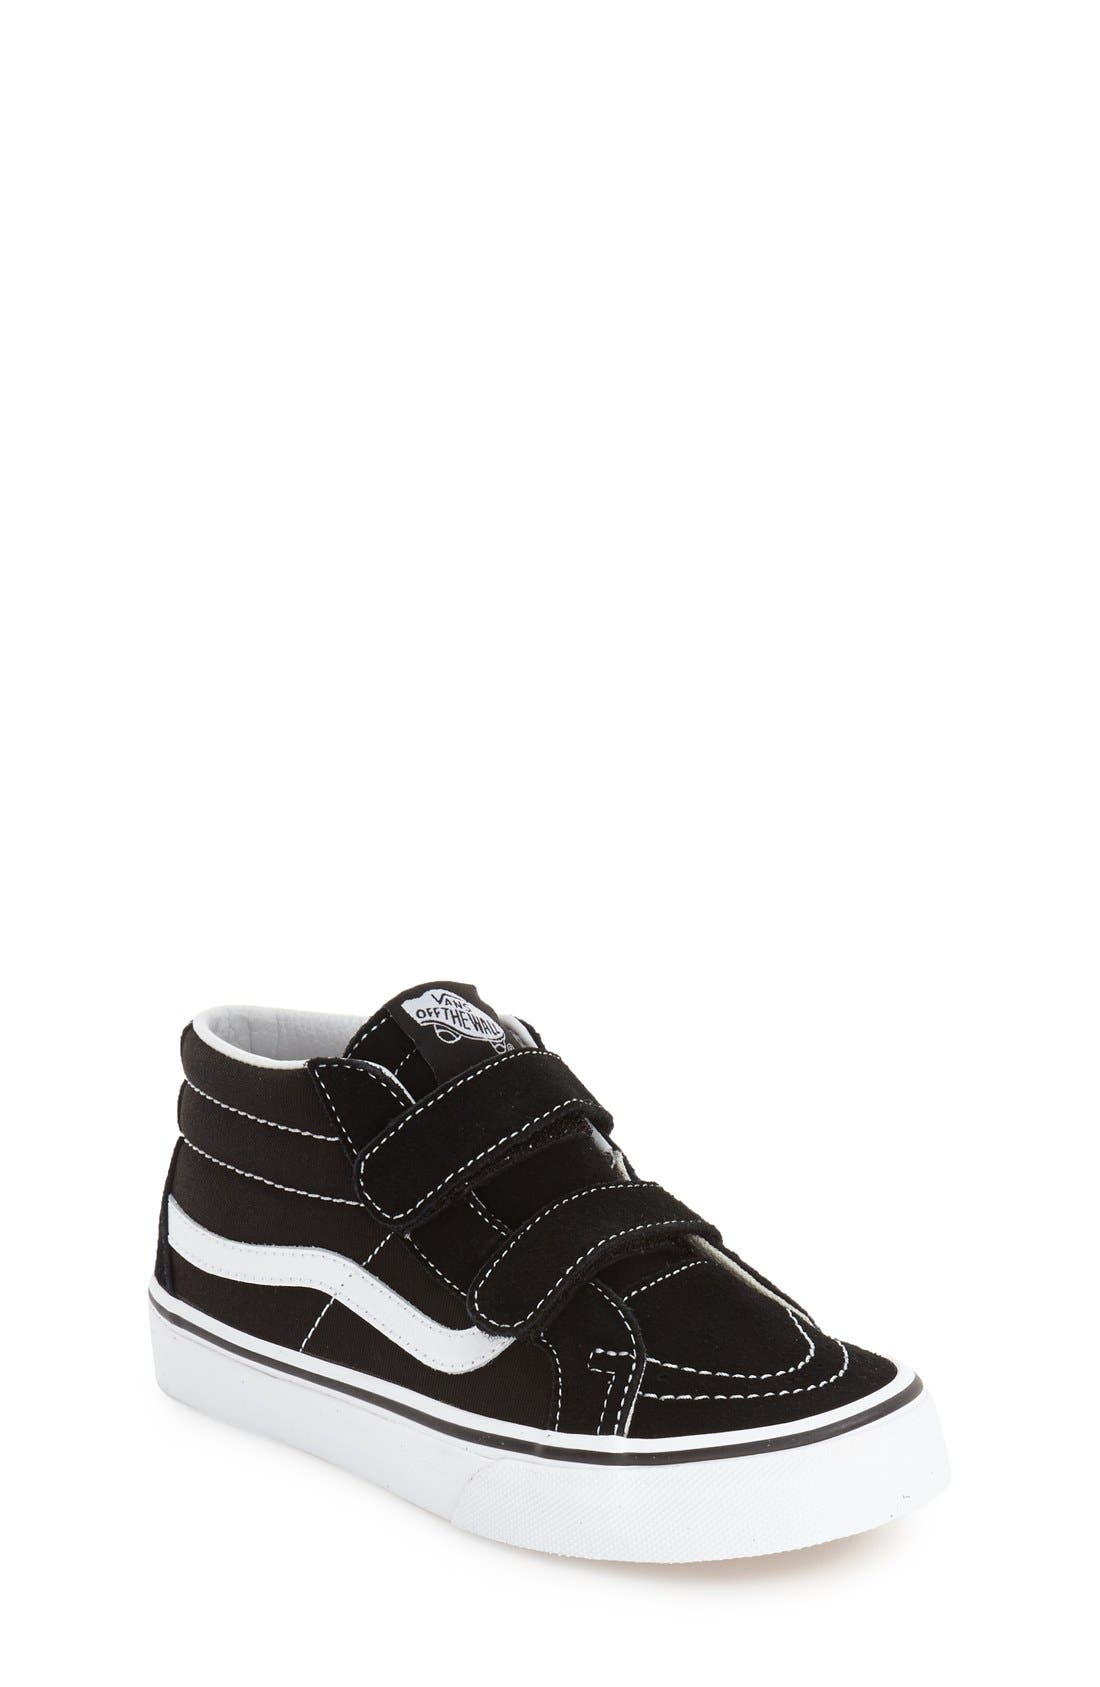 VANS, 'Sk8-Hi Reissue V' Sneaker, Main thumbnail 1, color, BLACK/ TRUE WHITE